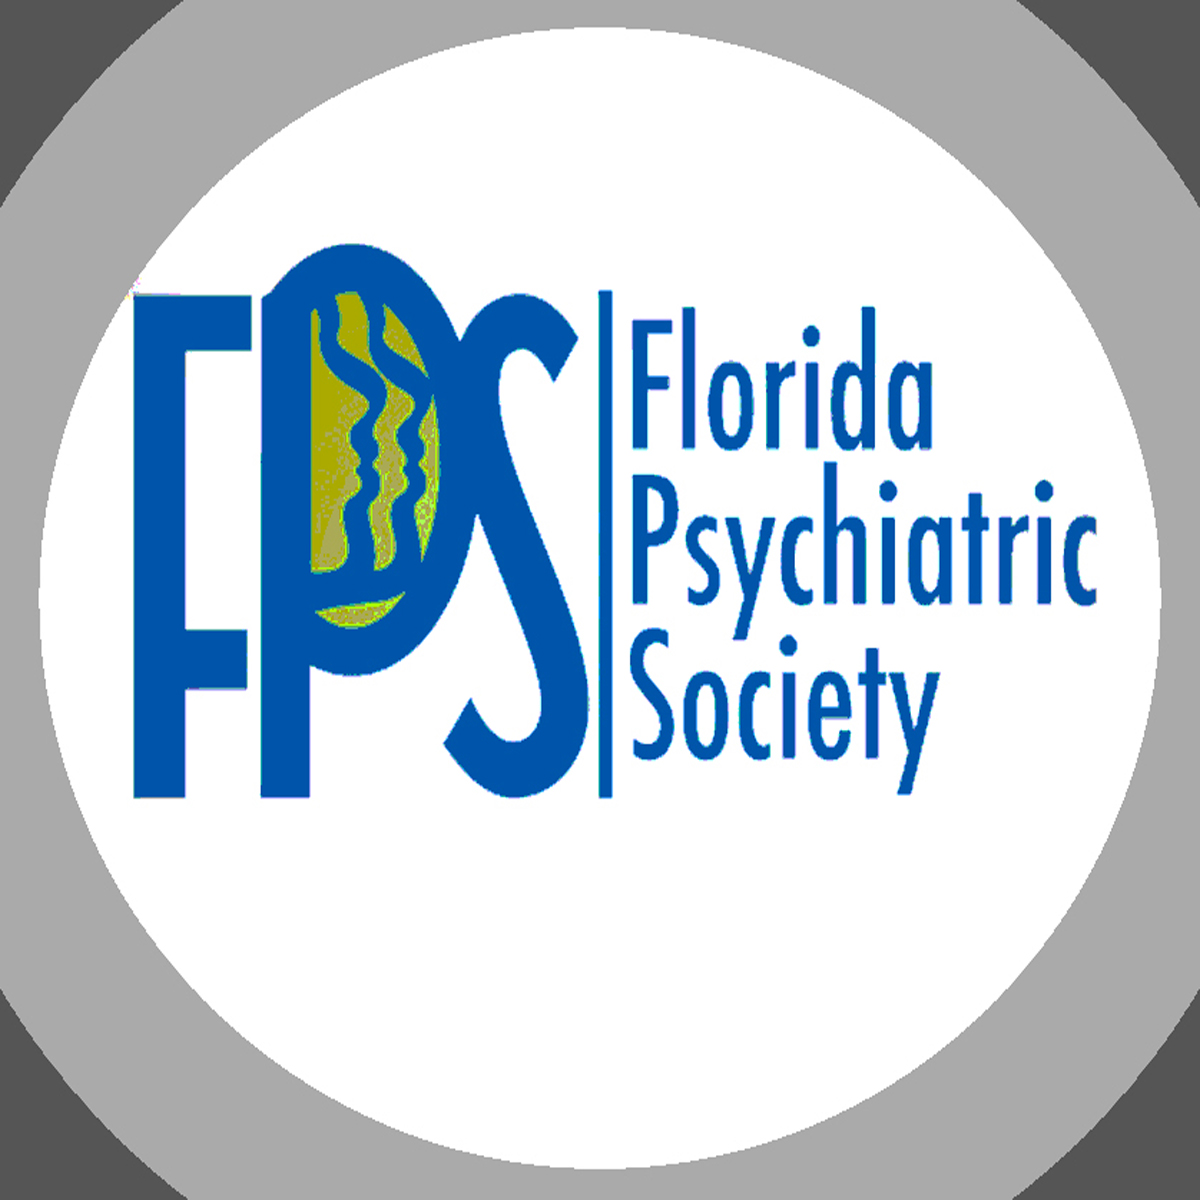 The Experts Speak - An Educational Service of the Florida Psychiatric Society